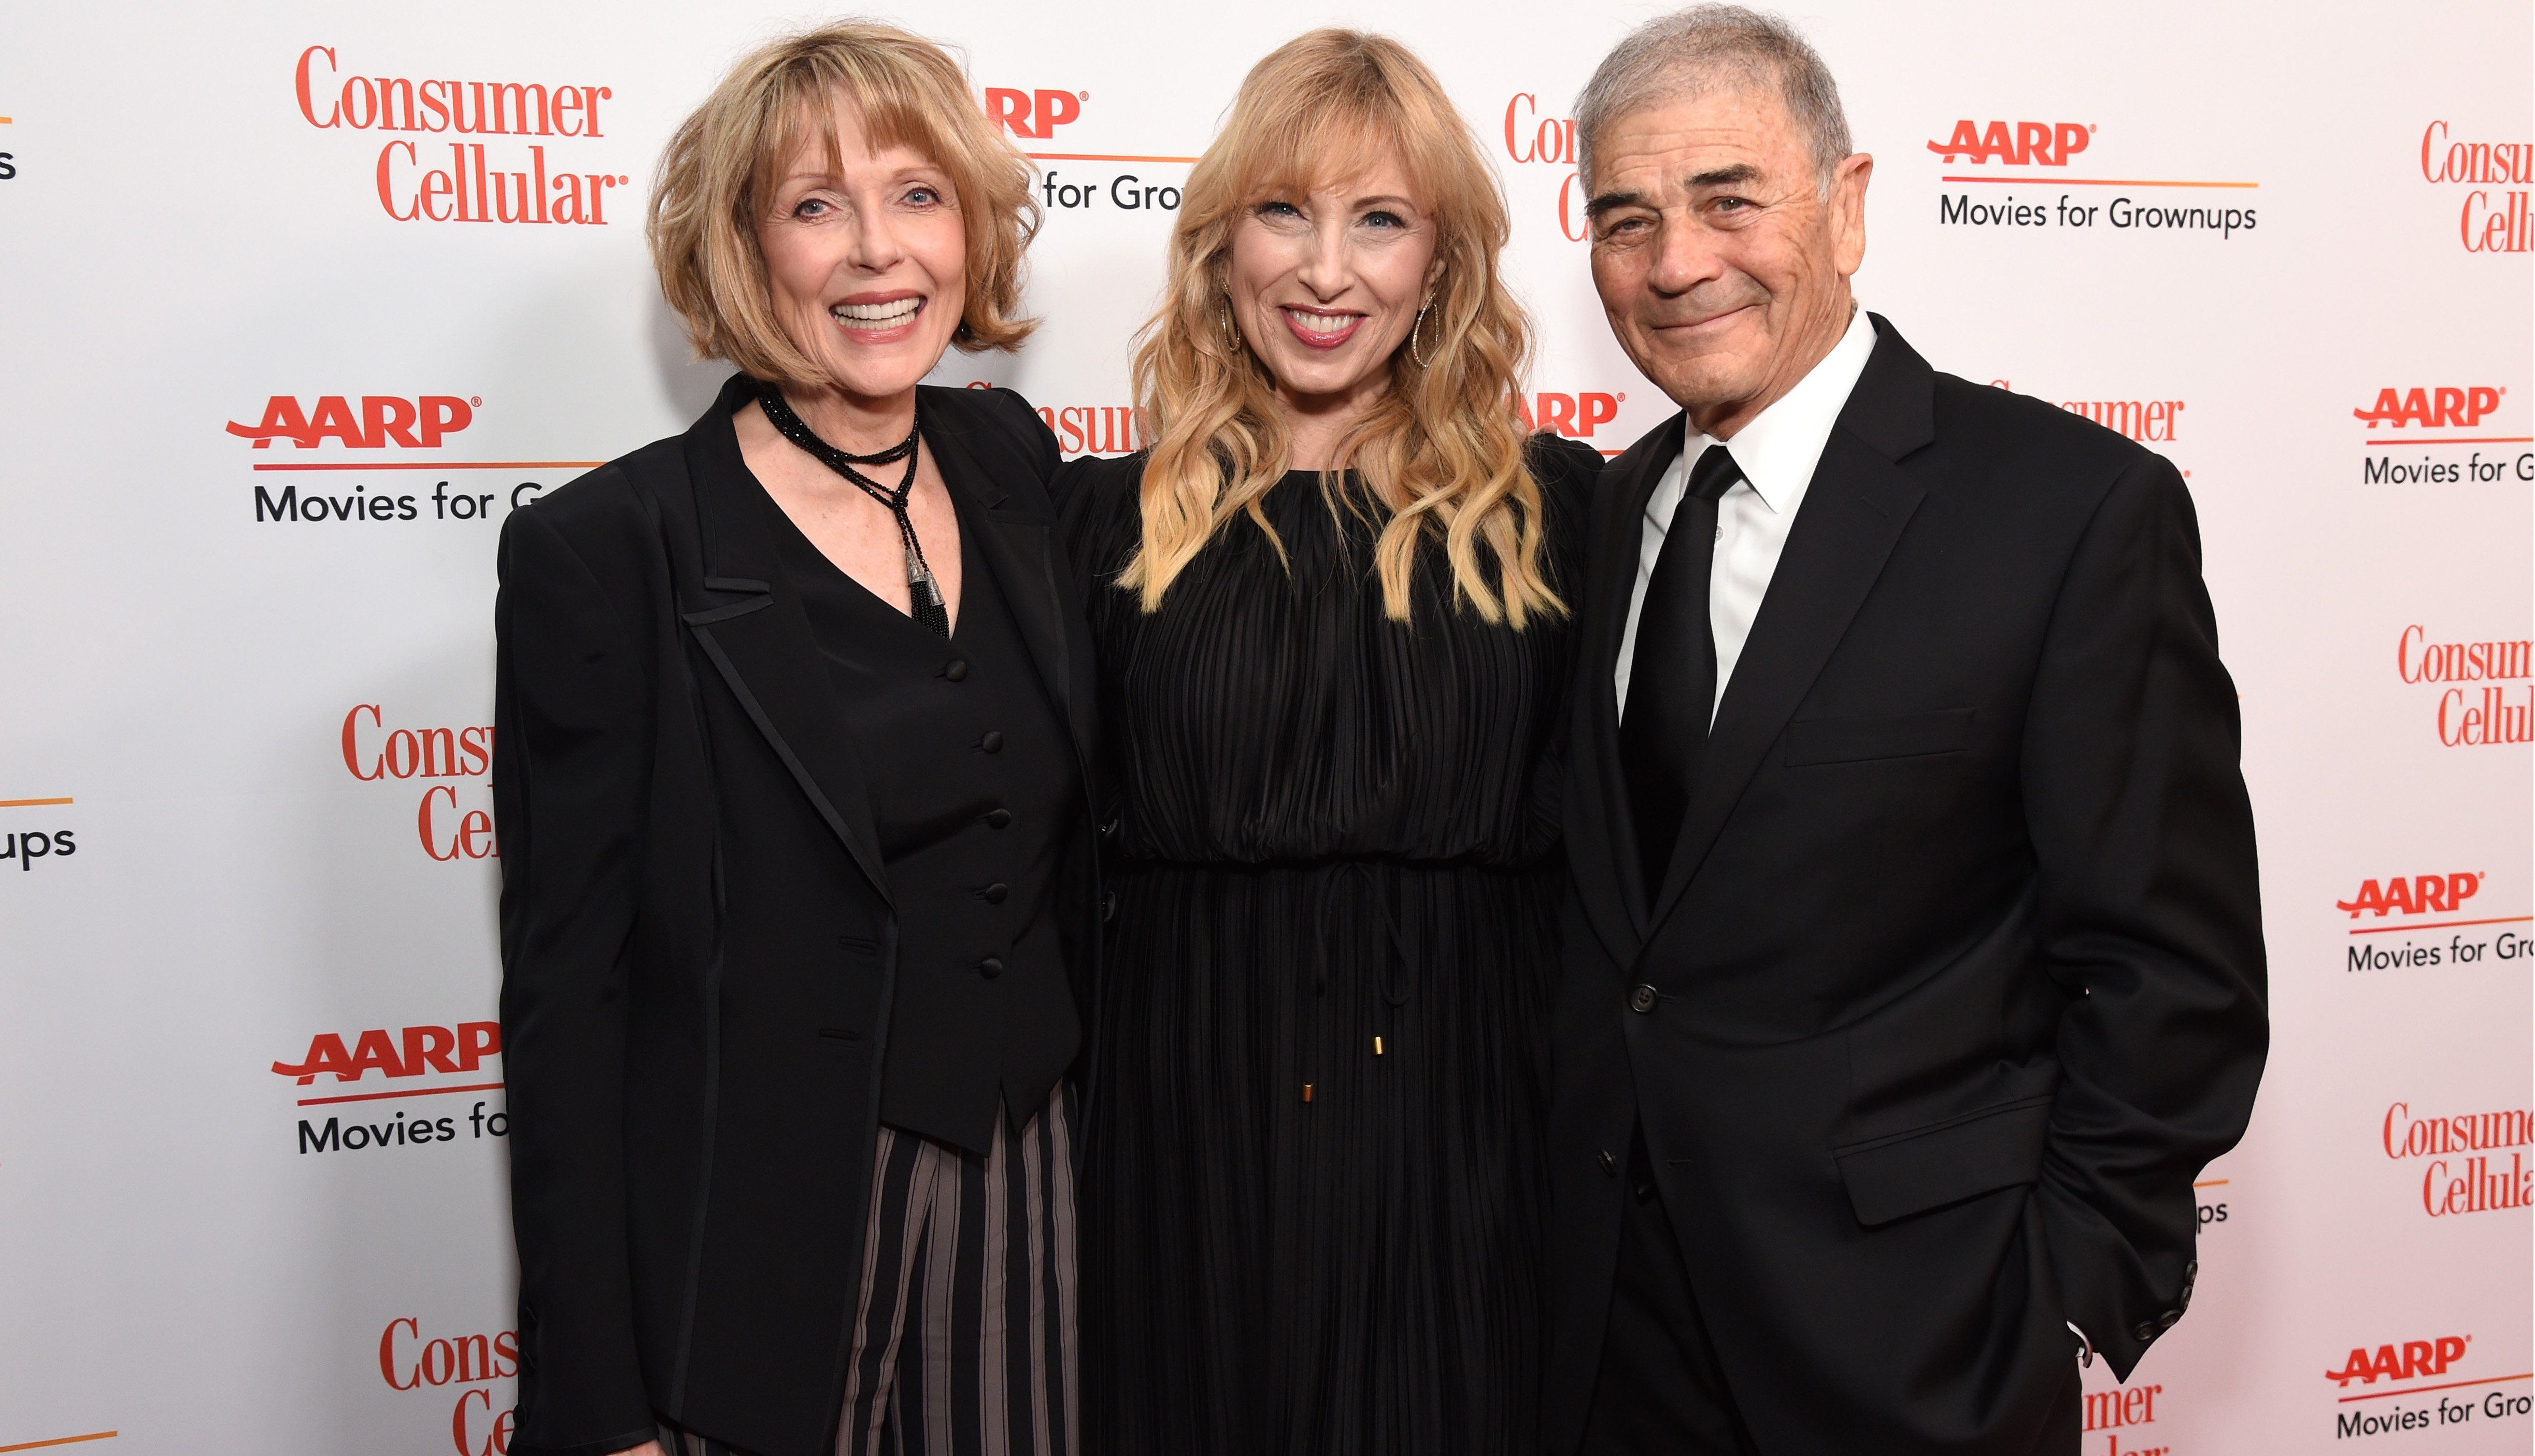 Susan Blakely, Denise Grayson, and Robert Forster